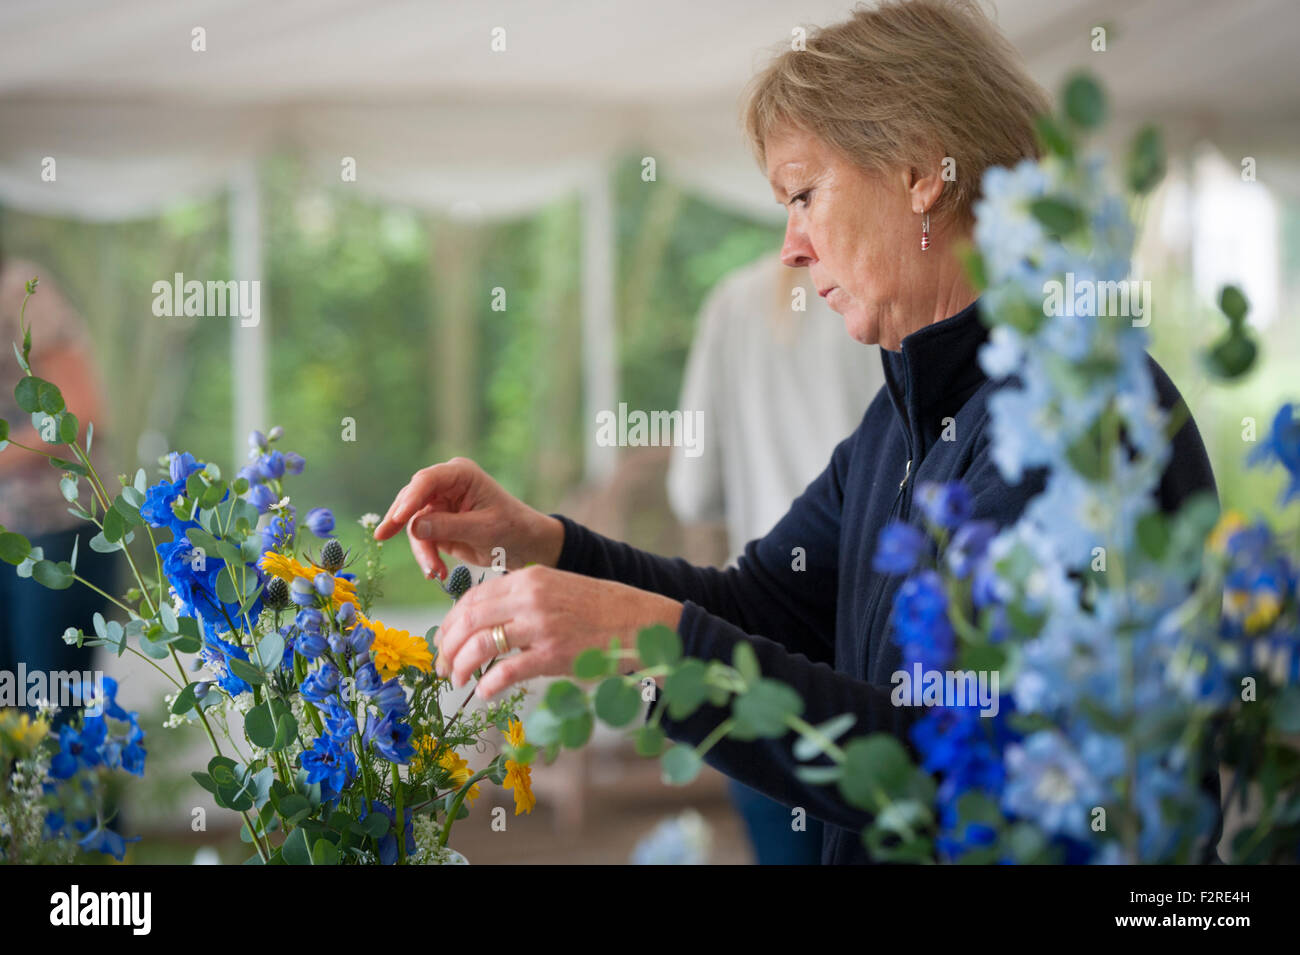 A mature woman arranging flowers - Stock Image